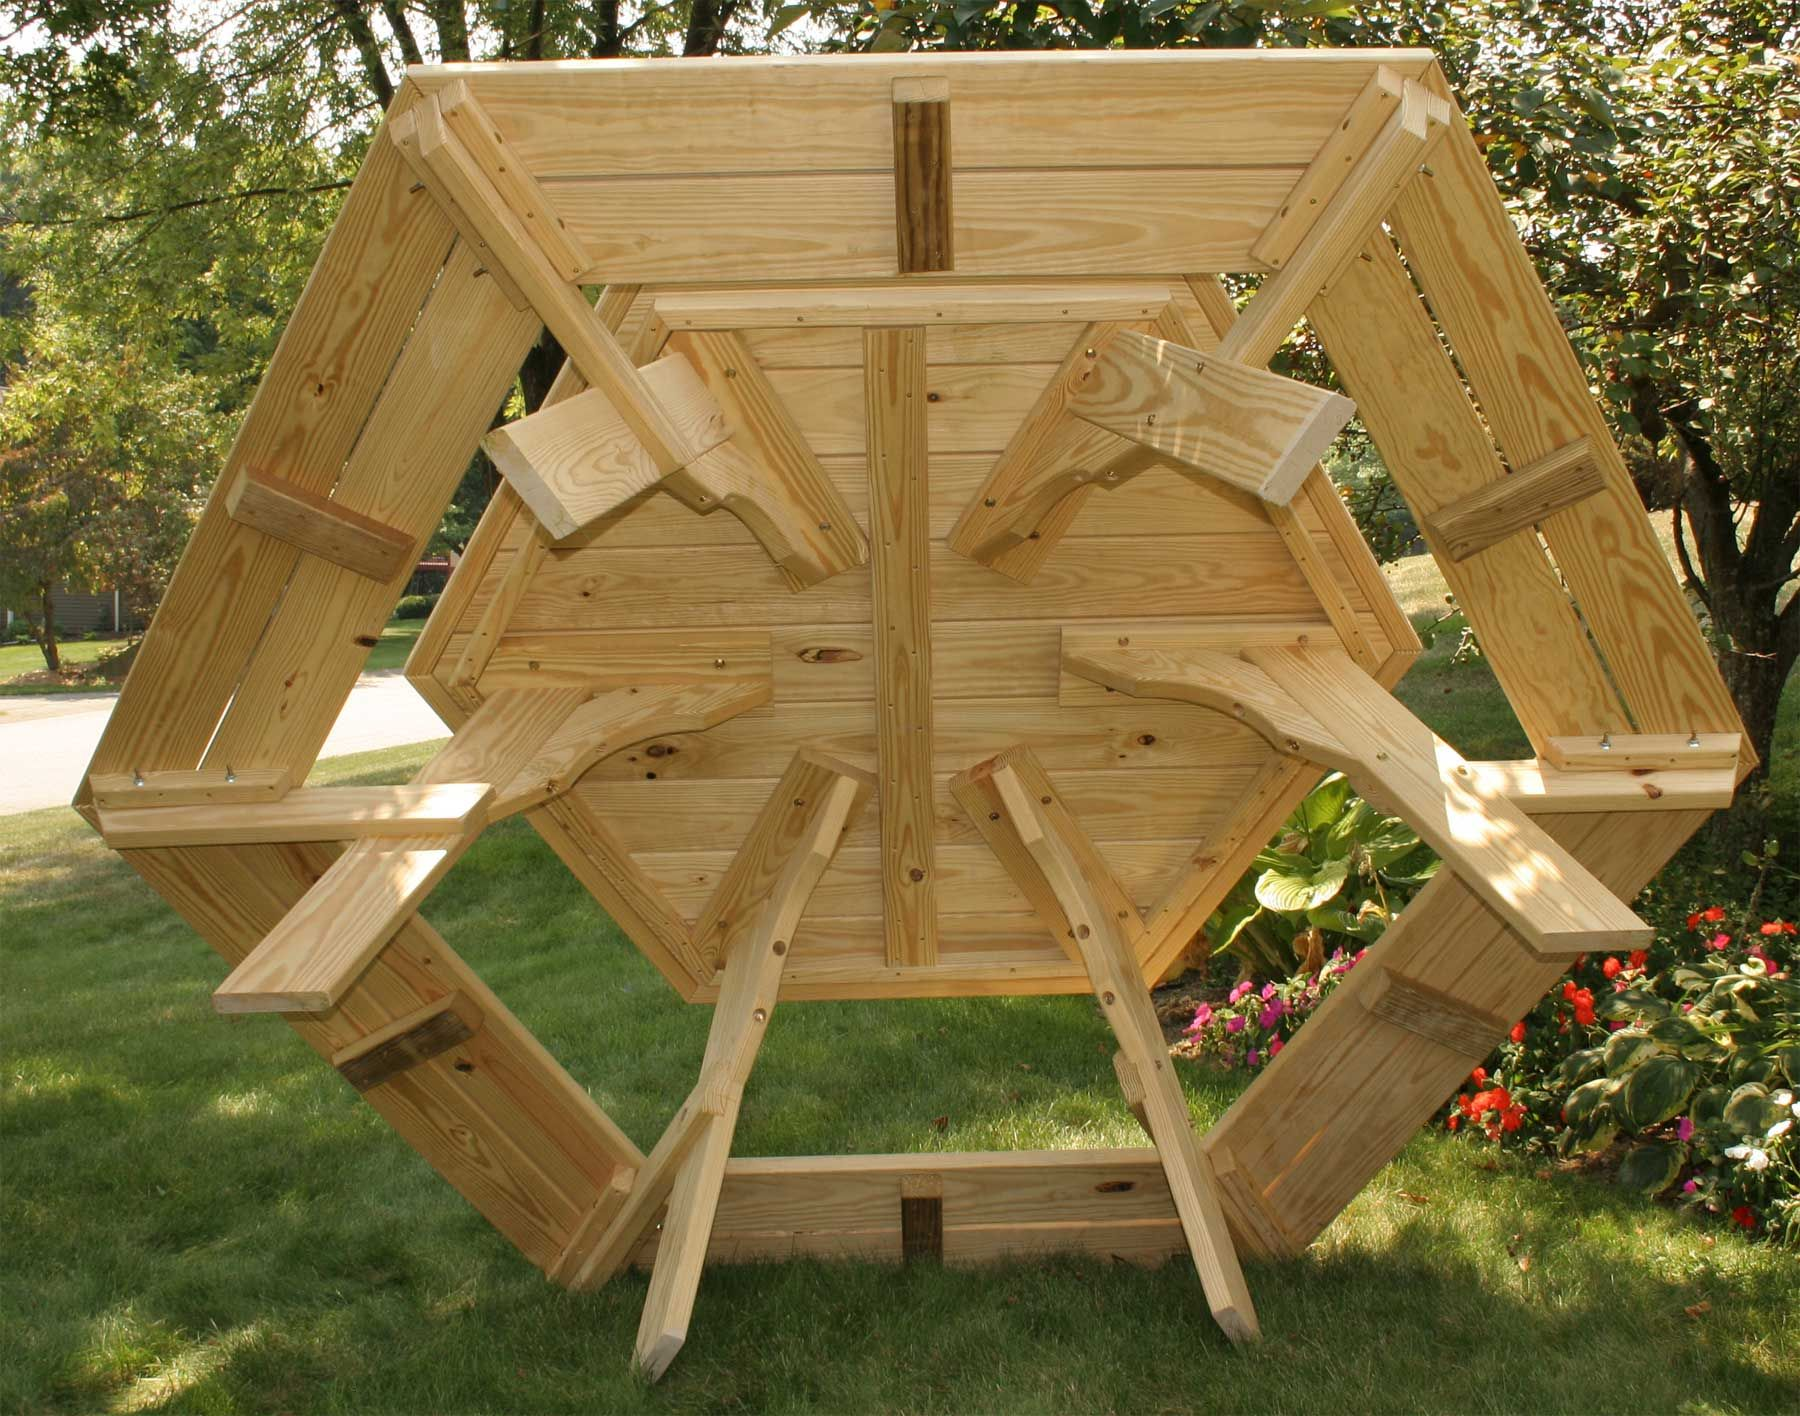 Hexagon Picnic Tables Treated Pine Hexagon Picnic Table With